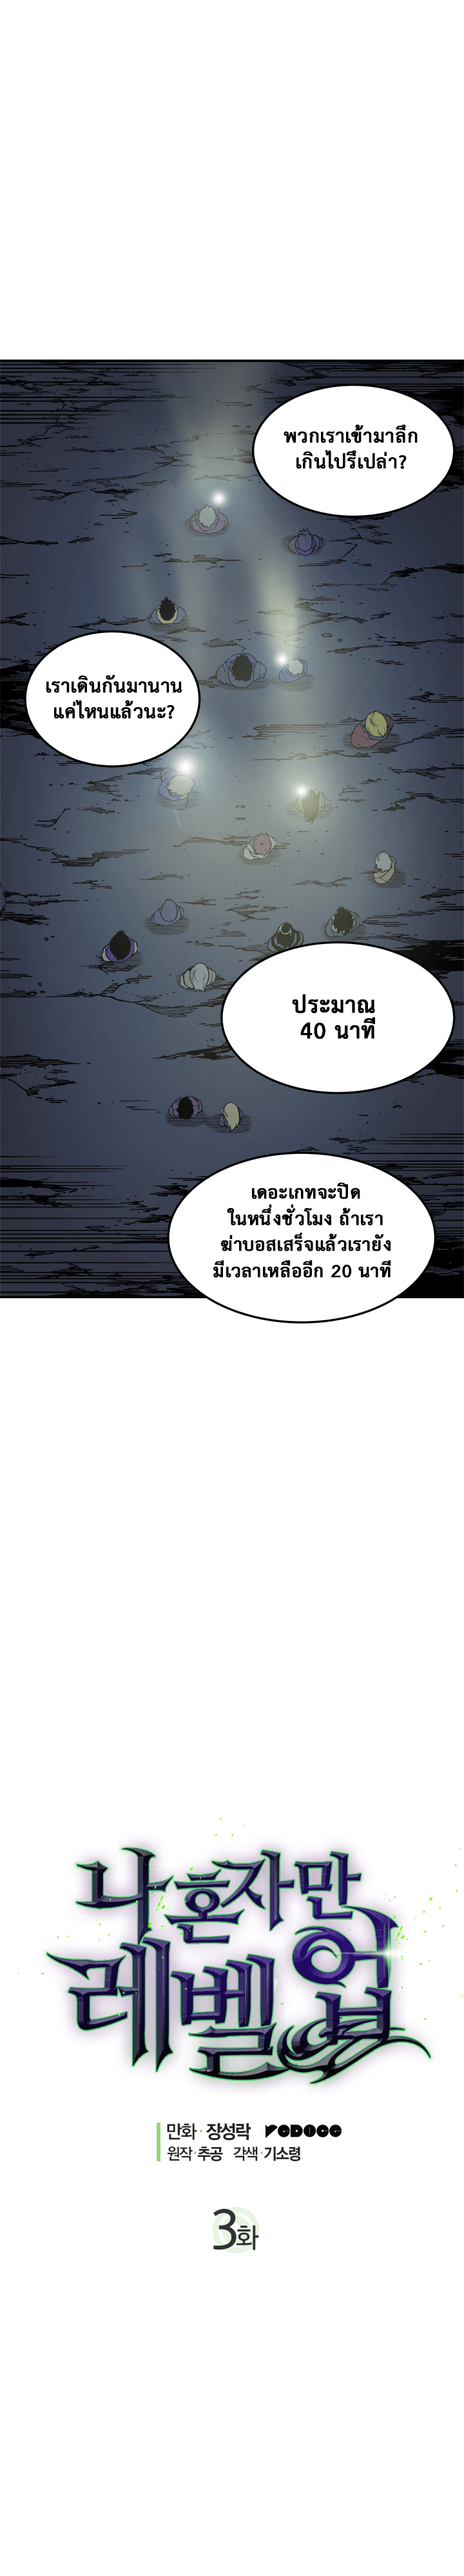 Solo Leveling - ตอนที่ 3